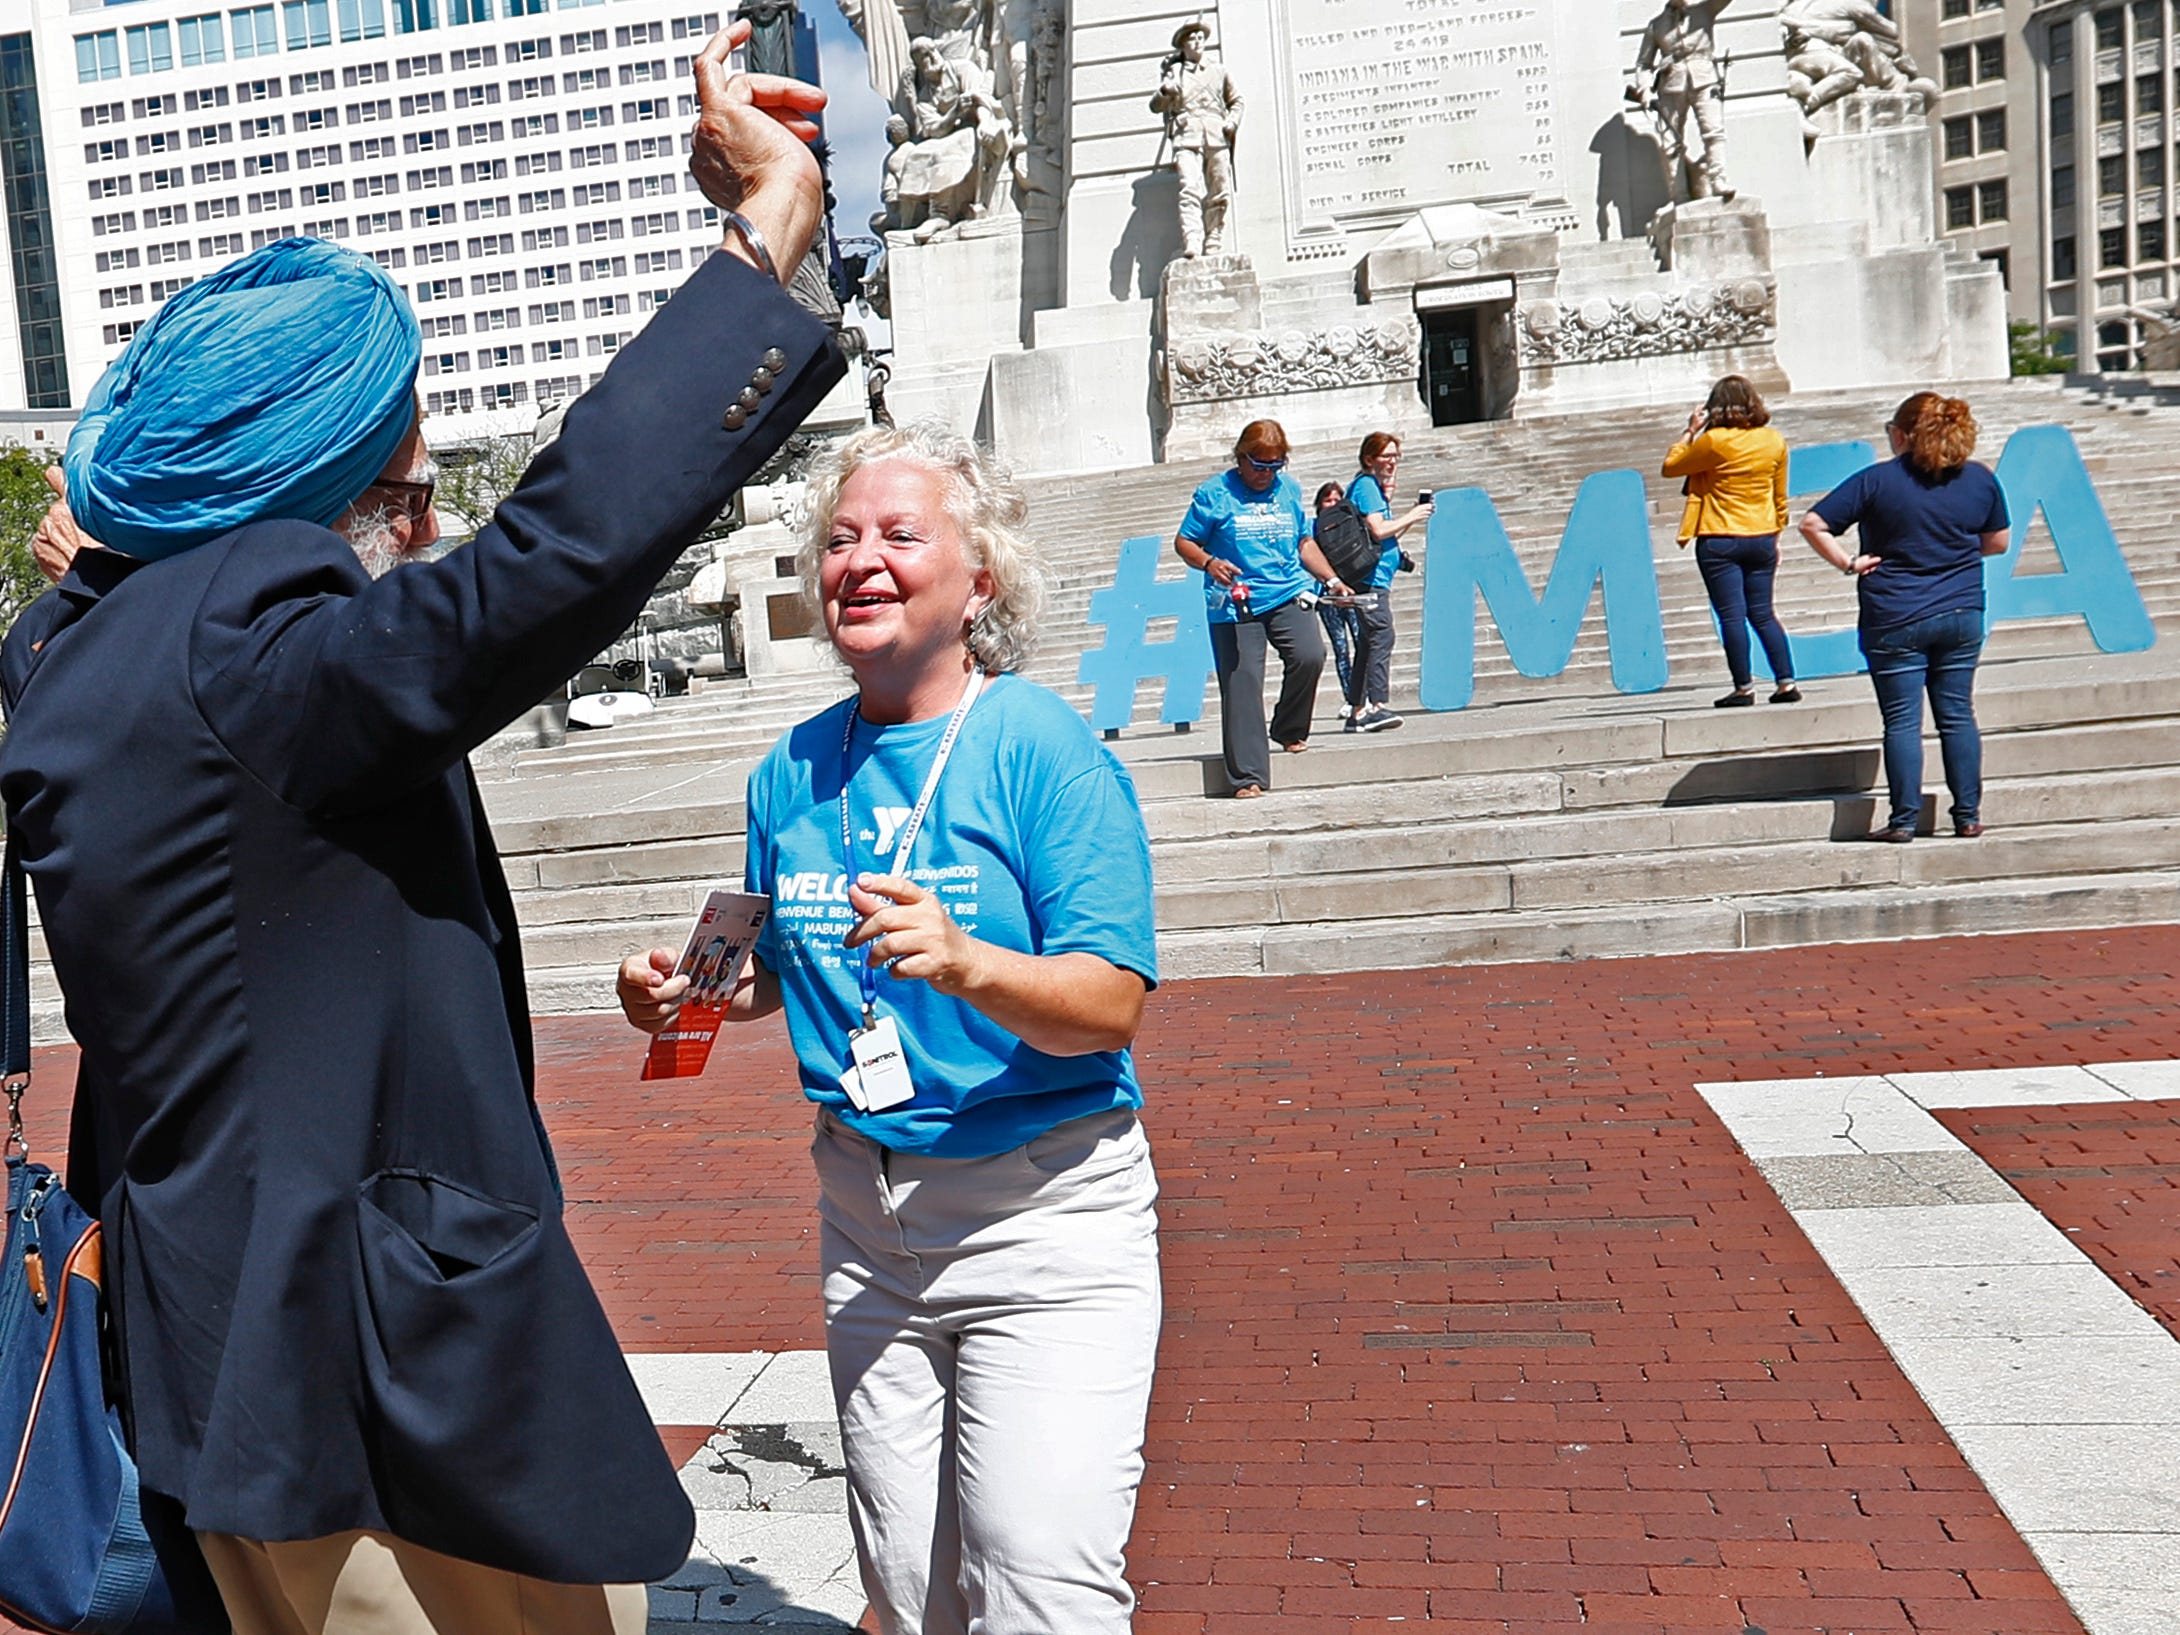 K.P. Singh, left, and Jane Gelhausen dance to music during the YMCA World Fest, on Monument Circle, Thursday, Sept. 13, 2018. YMCA of Greater Indianapolis hosts the free event that celebrates cultures including international food vendors, music, sports, and performers.